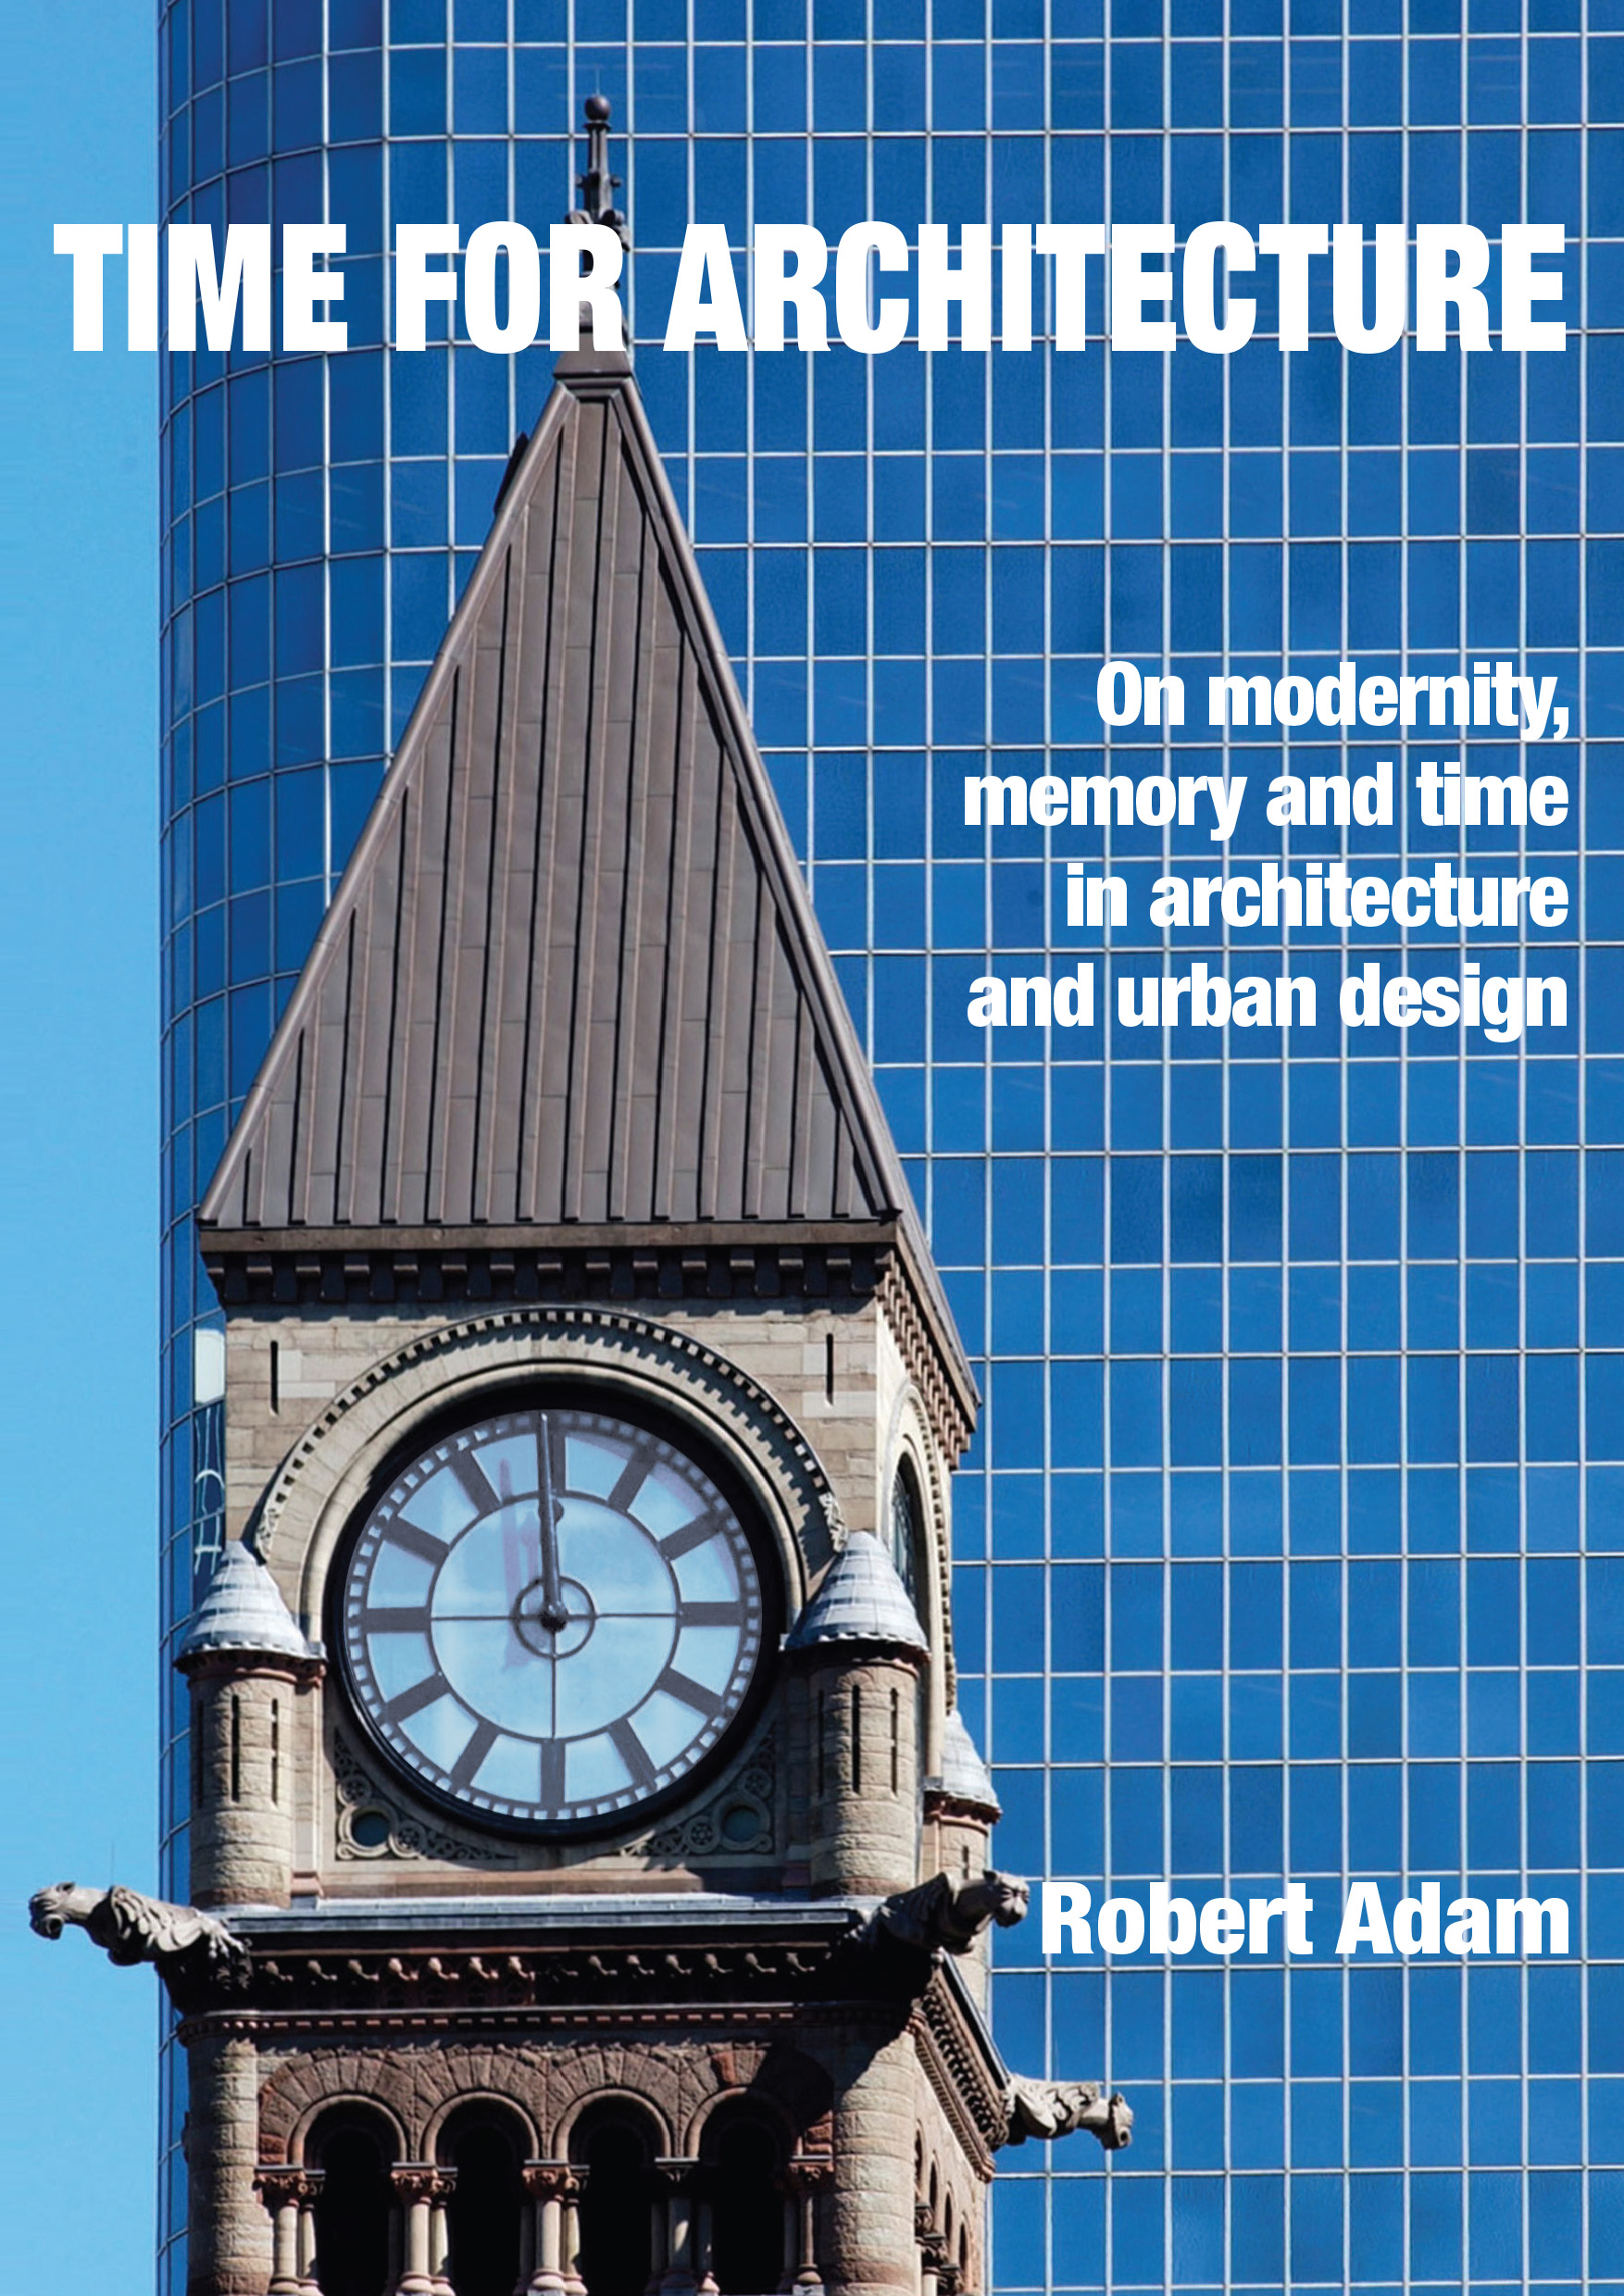 Time for Architecture: On Modernity, Memory and Time in Architecture and Urban Design